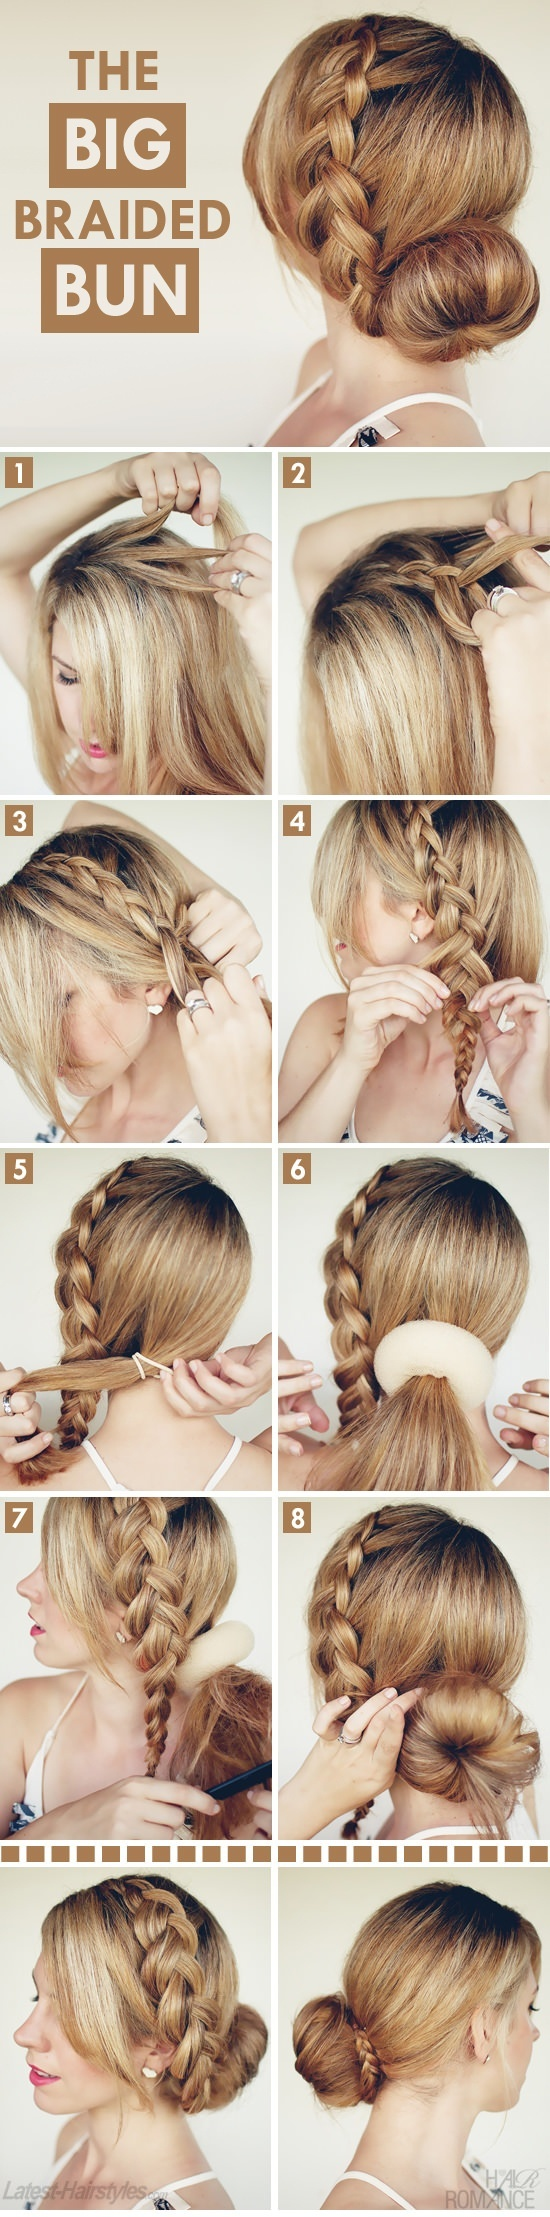 Hairstyle Tutorials (3)